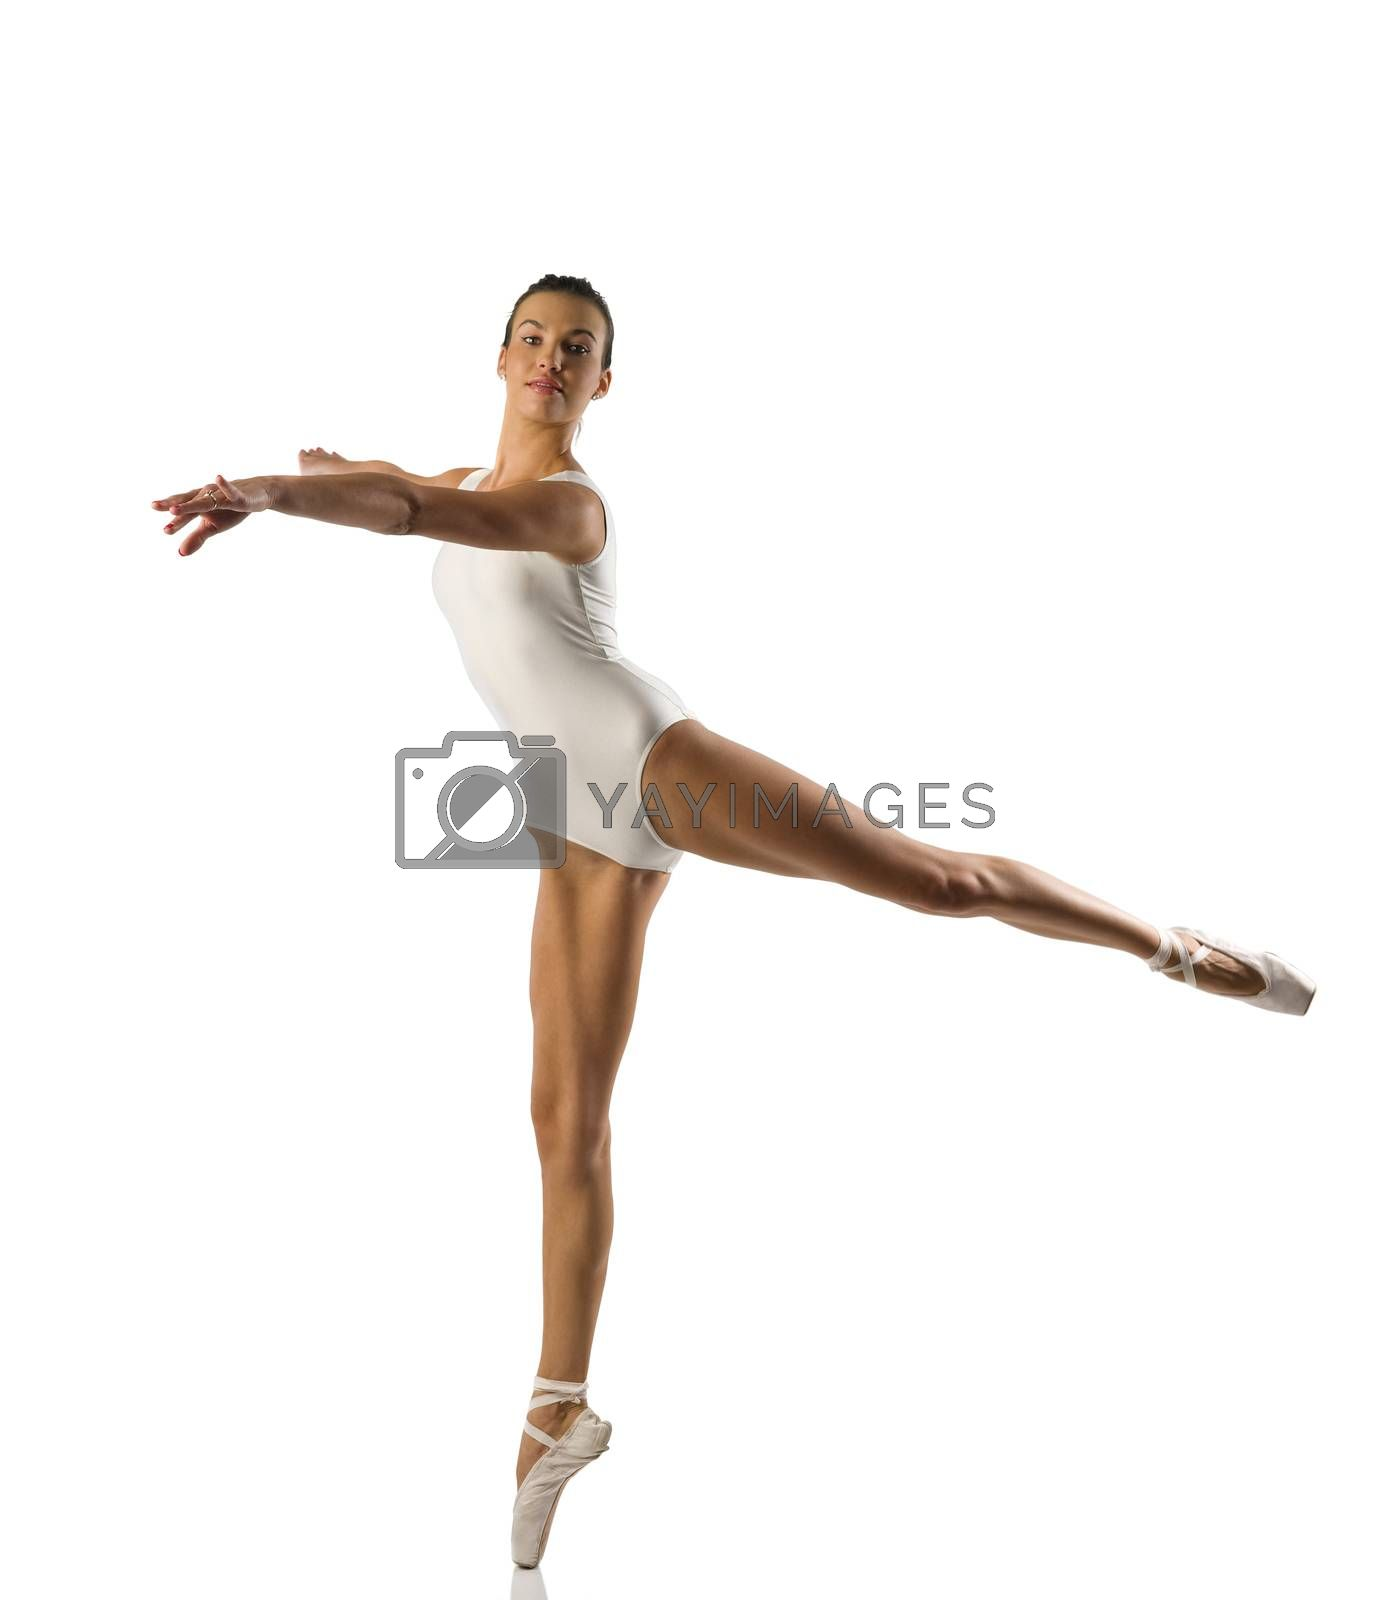 Royalty free image of the ballerina by fotoCD